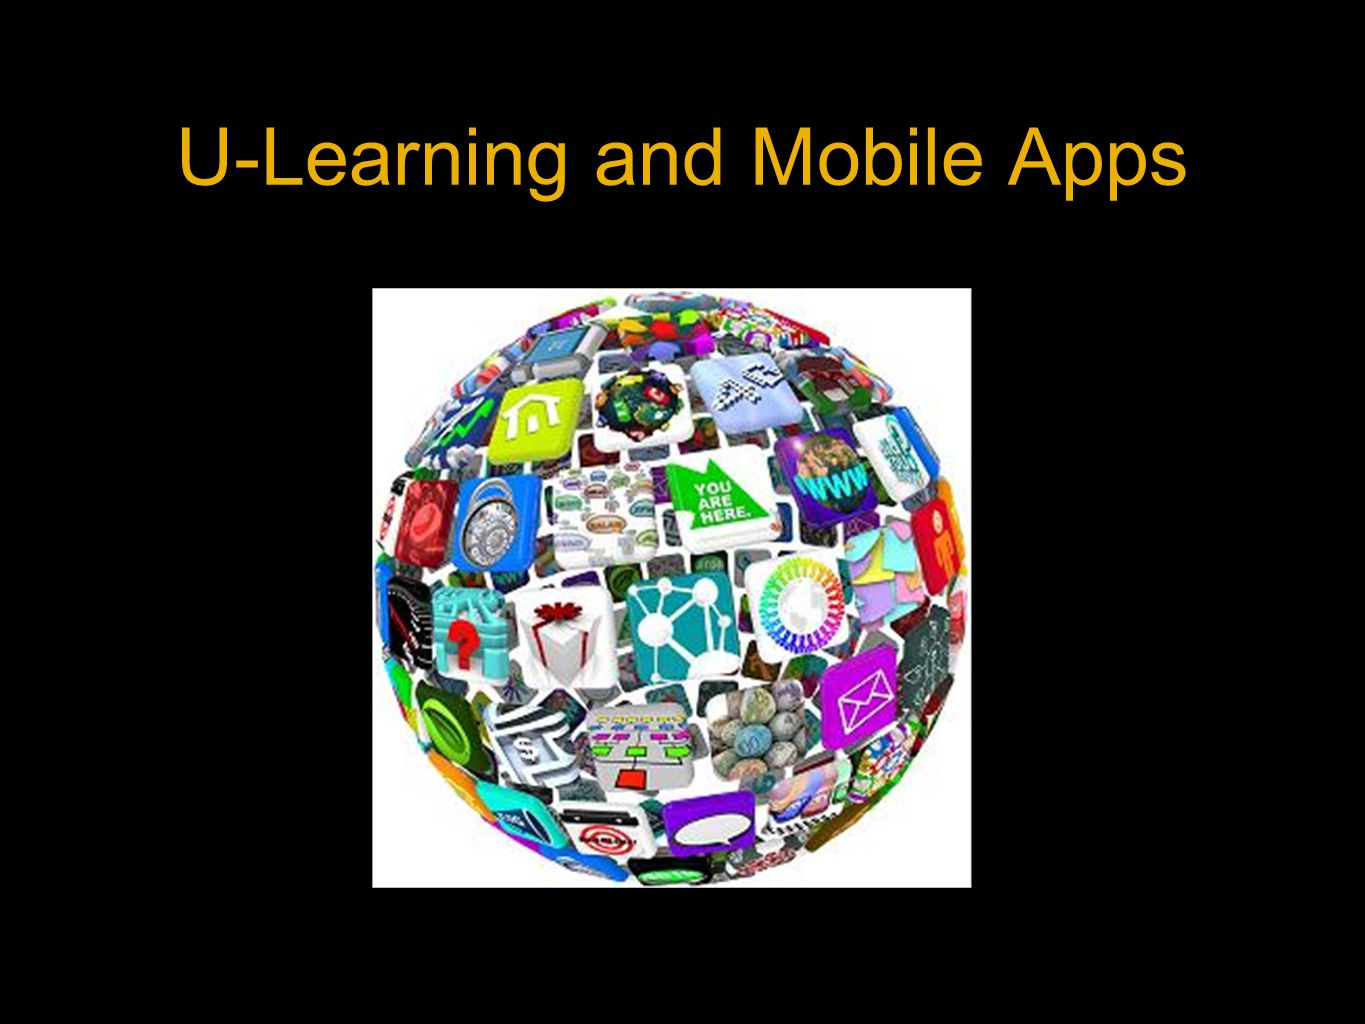 U-Learning and Mobile Apps